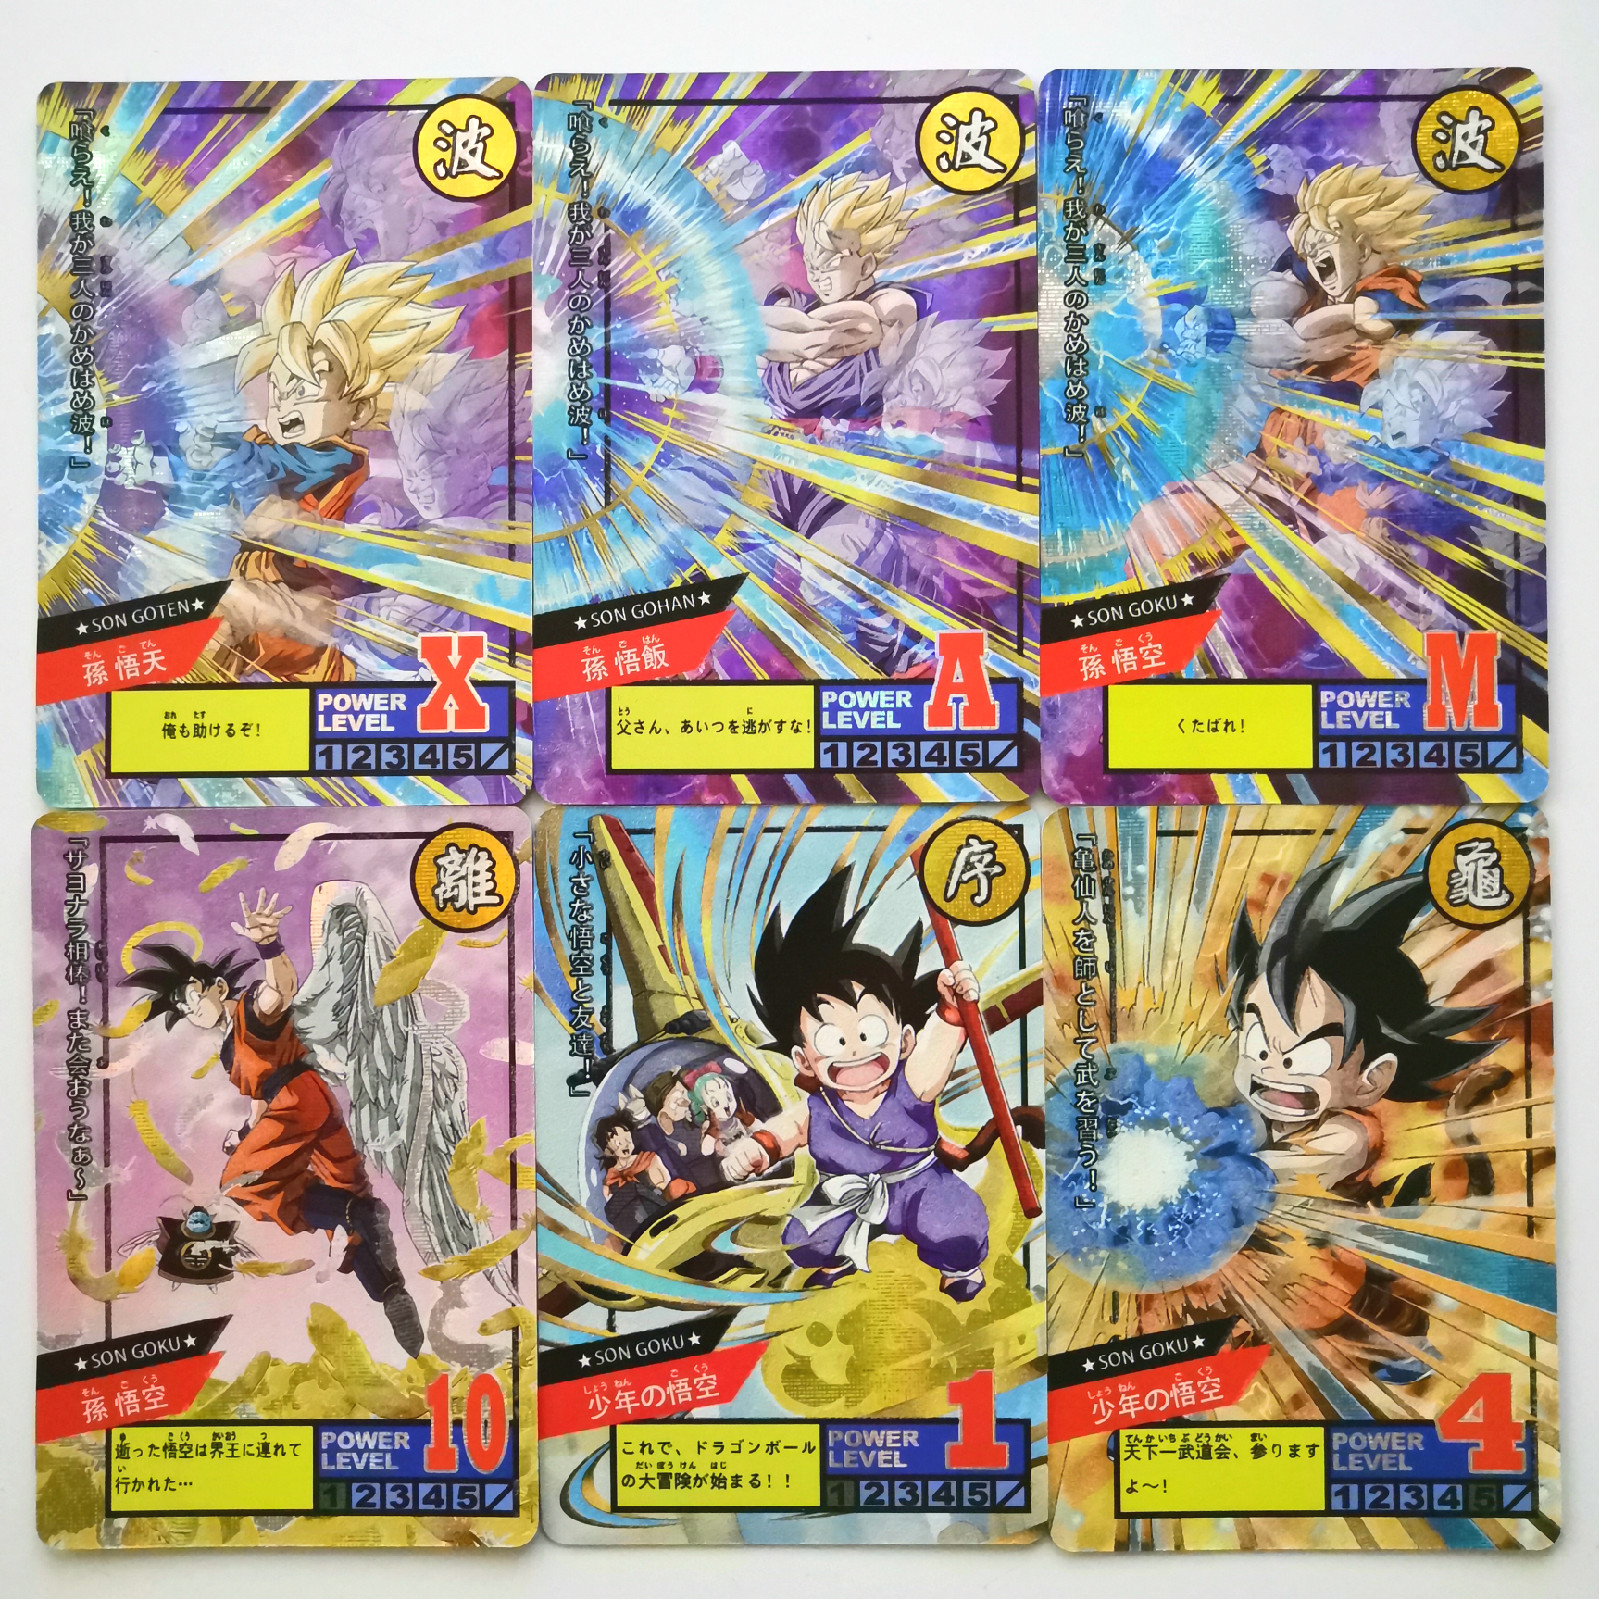 27pcs/set Super Dragon Ball Z Heroes Battle Card Ultra Instinct Goku Vegeta Game Collection Anime Cards